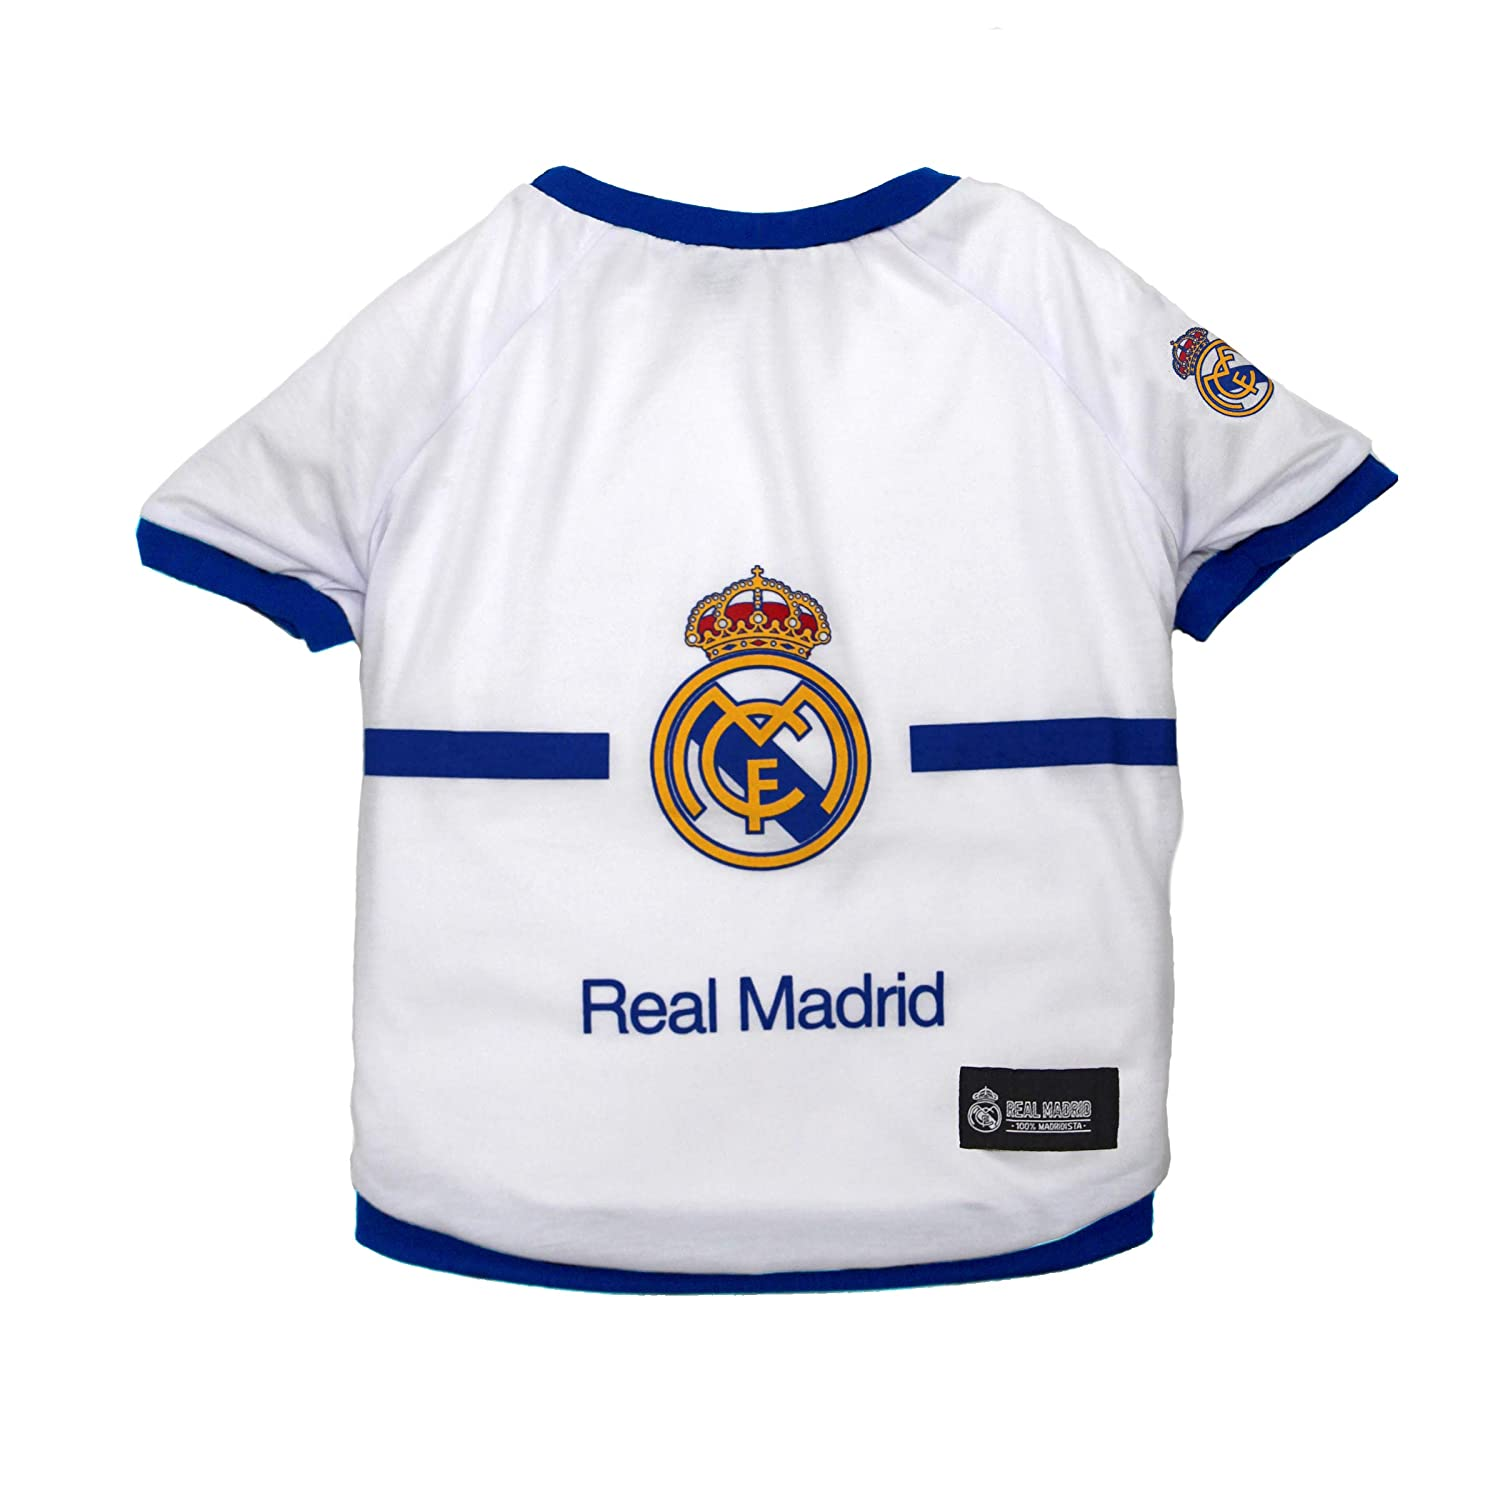 MLS Sports Licensed Dog Apparels Cute Pet Accessories /& Fun Toys Real Madrid Soccer Pet Jerseys Shirts Collars Bandanas /& Football Toys for Dogs /& Cats